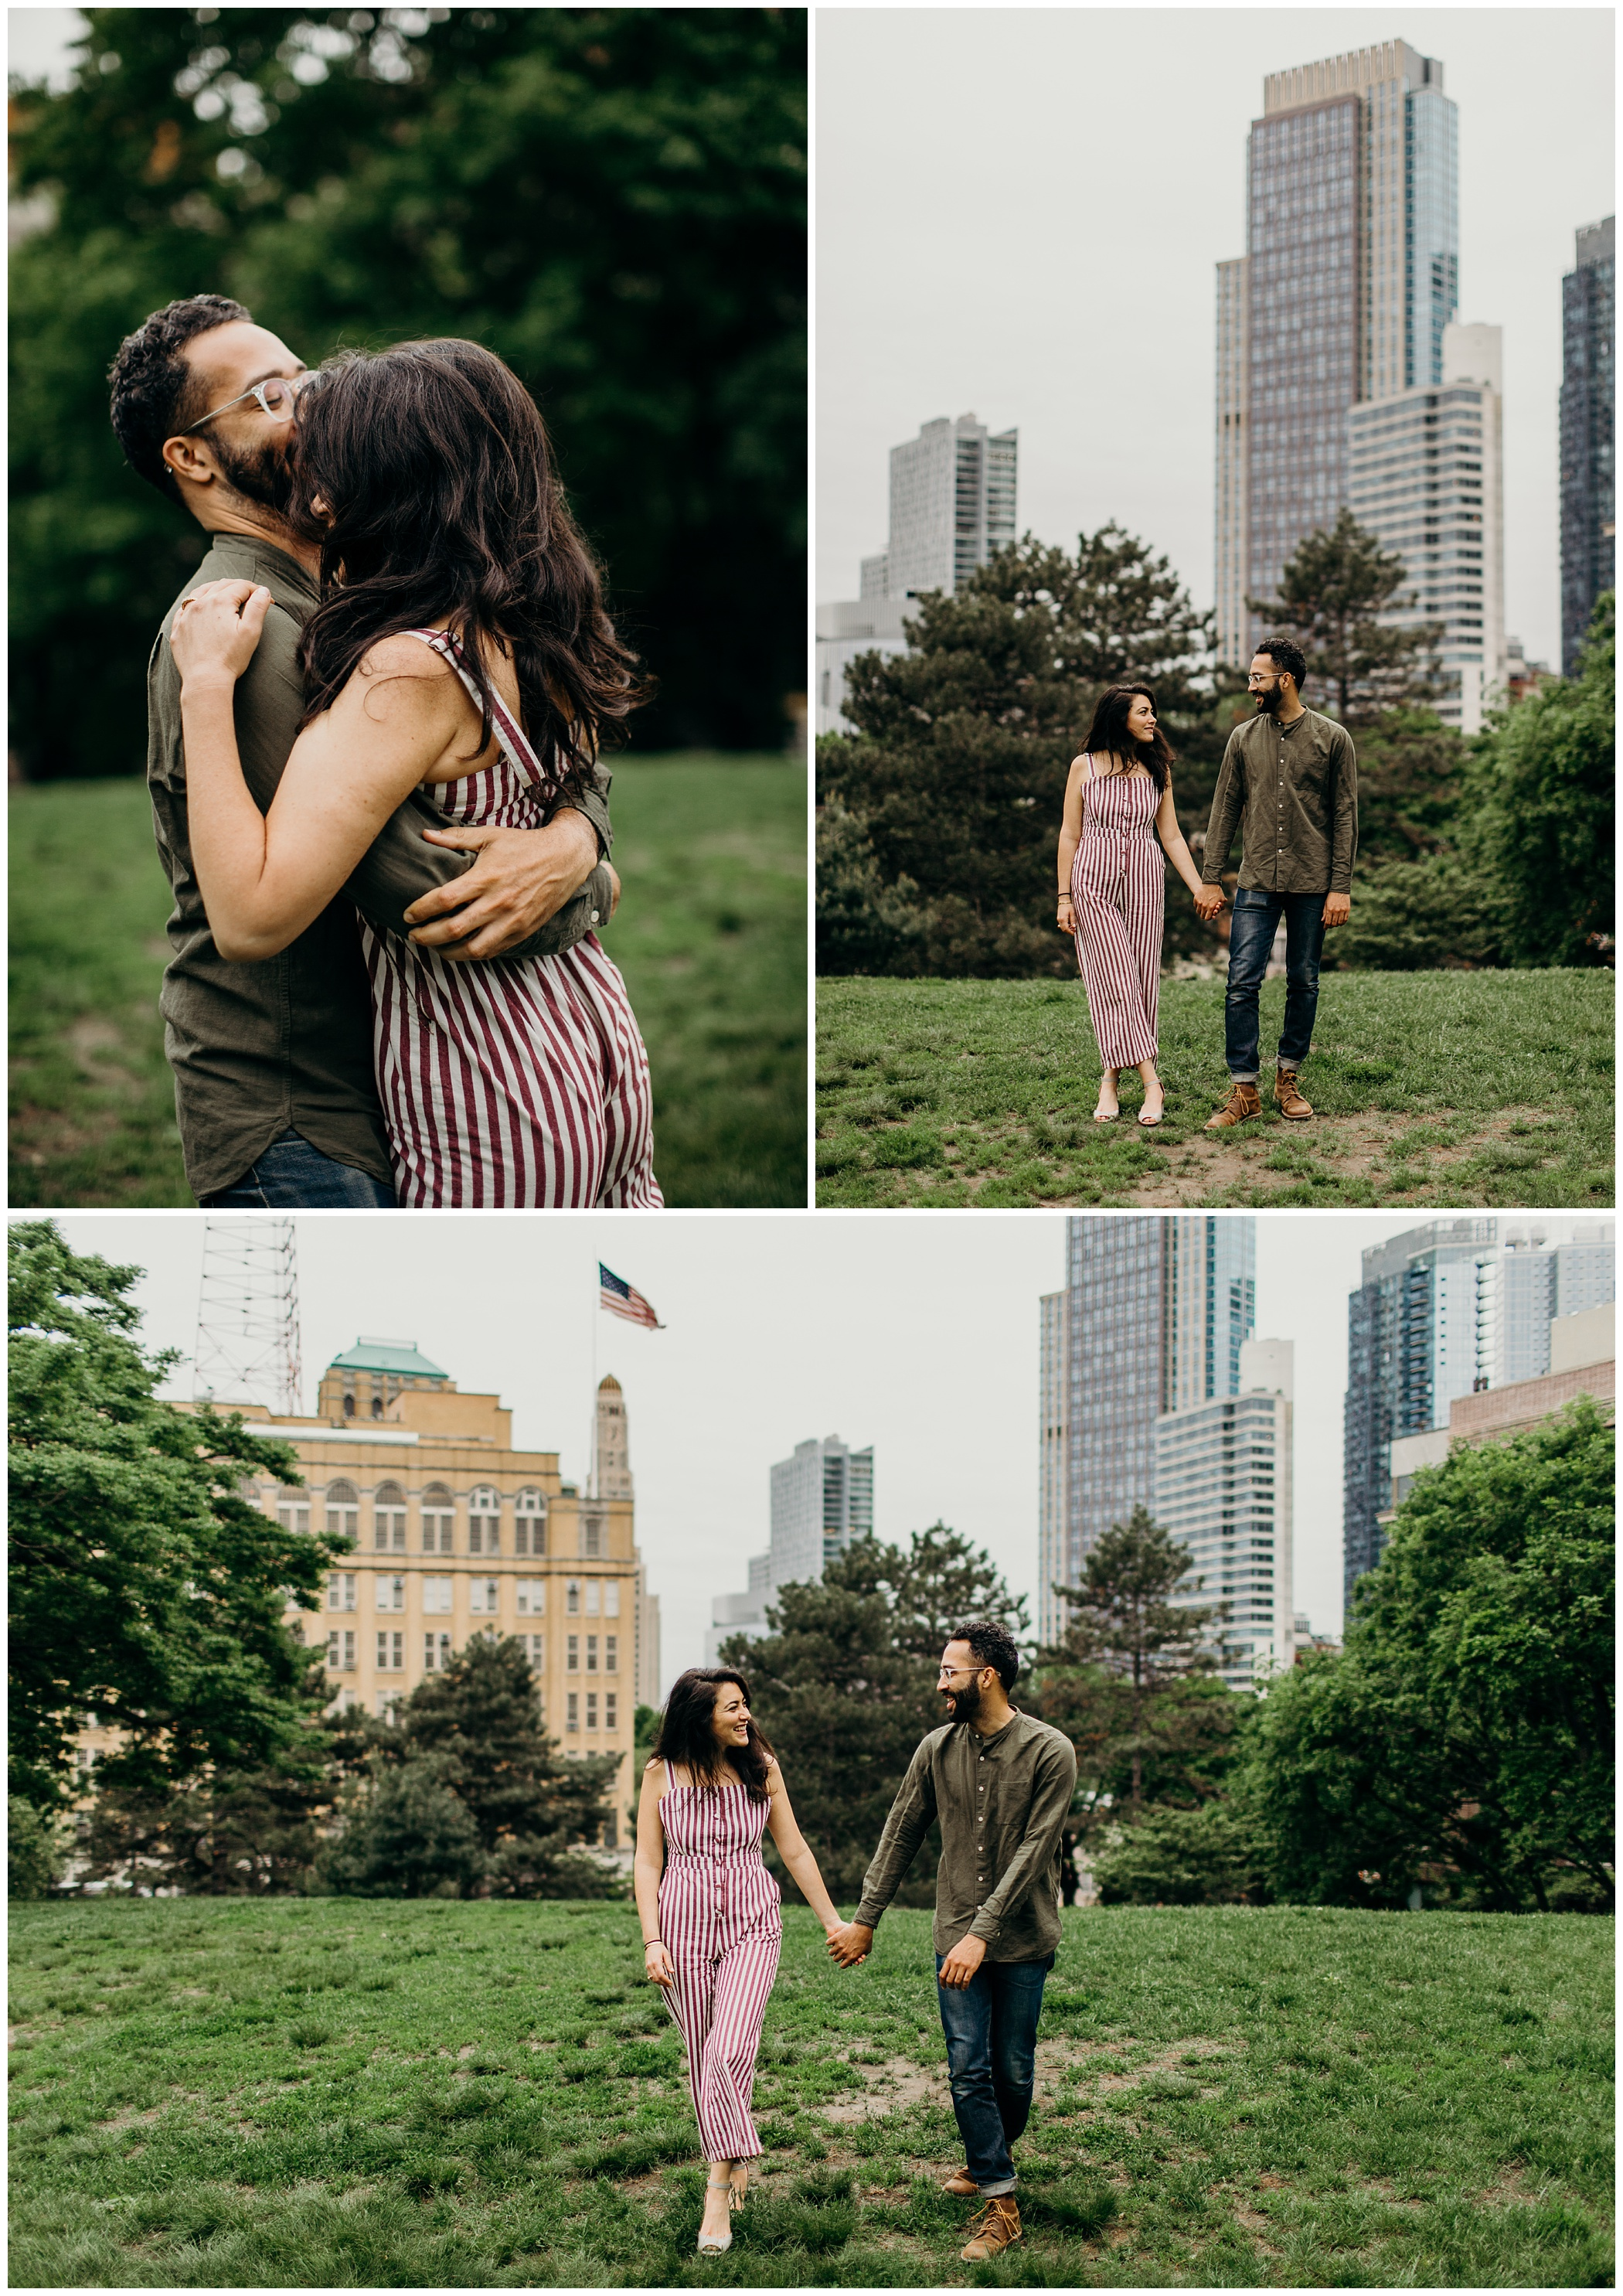 indoor engagement session, Brooklyn brownstone engagement session, the Johnsons photo, nyc wedding photographer, Brooklyn New York wedding photographer, Brooklyn New York engagement session, Brooklyn brownstone lifestyle, Brooklyn engagement photos,